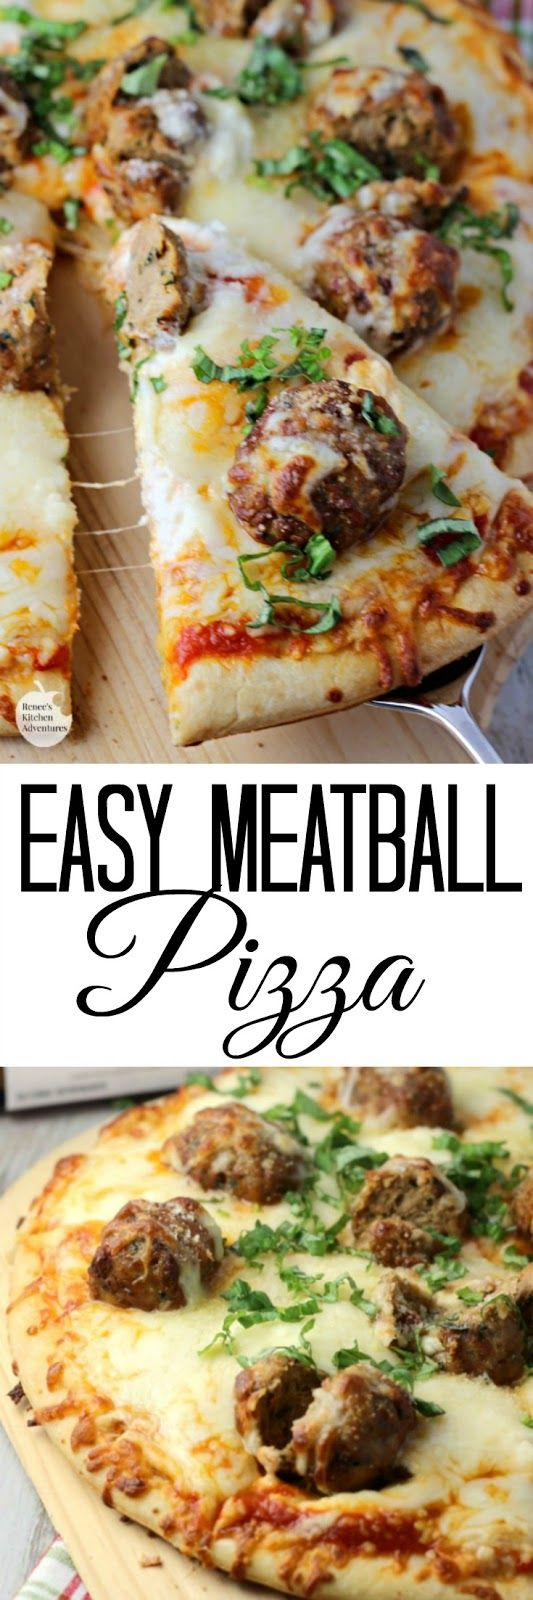 Easy Meatball Pizza | by Renee's Kitchen Adventures - Easy recipe for a delicious family-friendly three cheese meatball pizza #ad